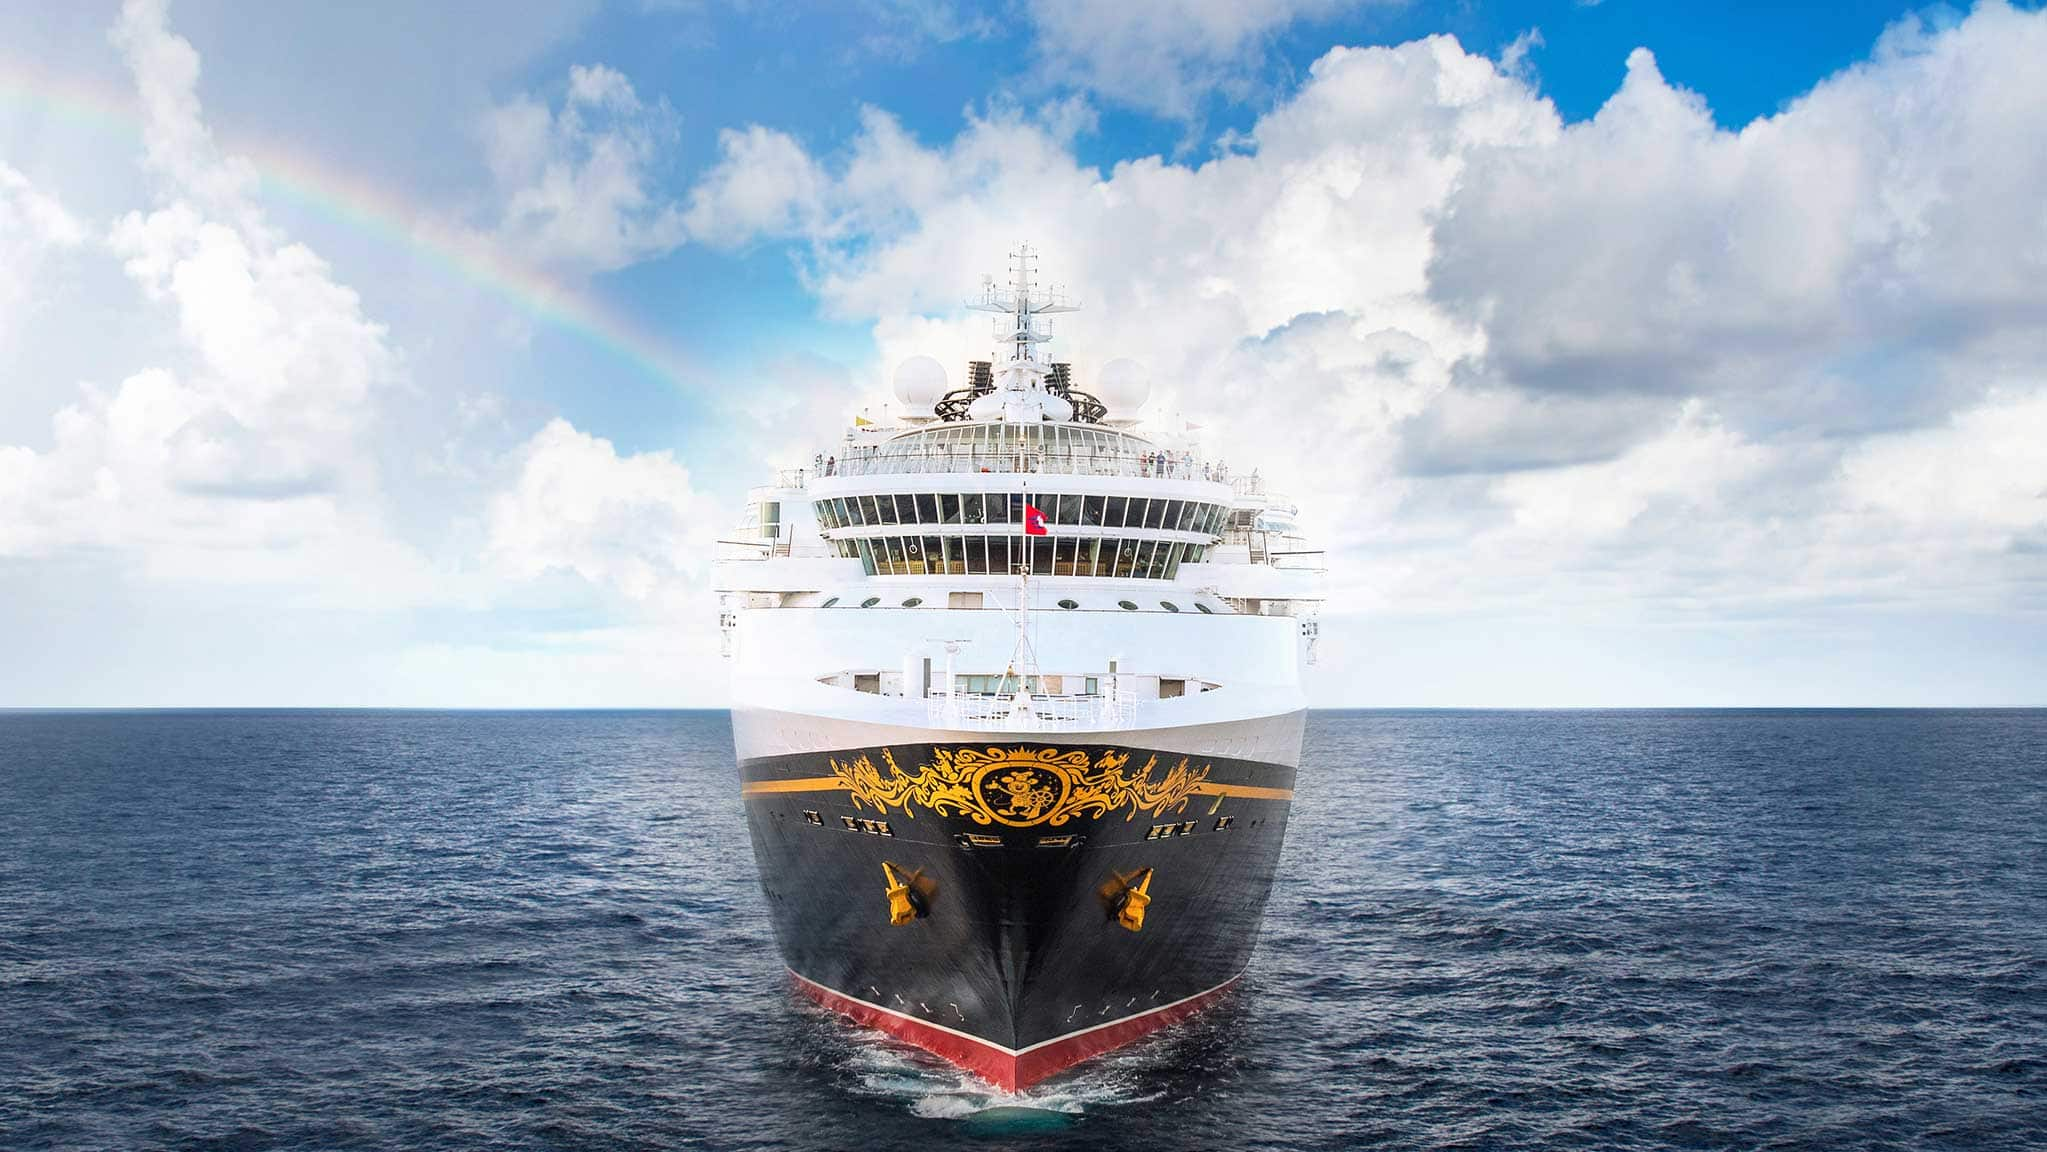 A Disney Cruise Ship Cuts Through The Ocean With Clouds And A Rainbow In The Sky